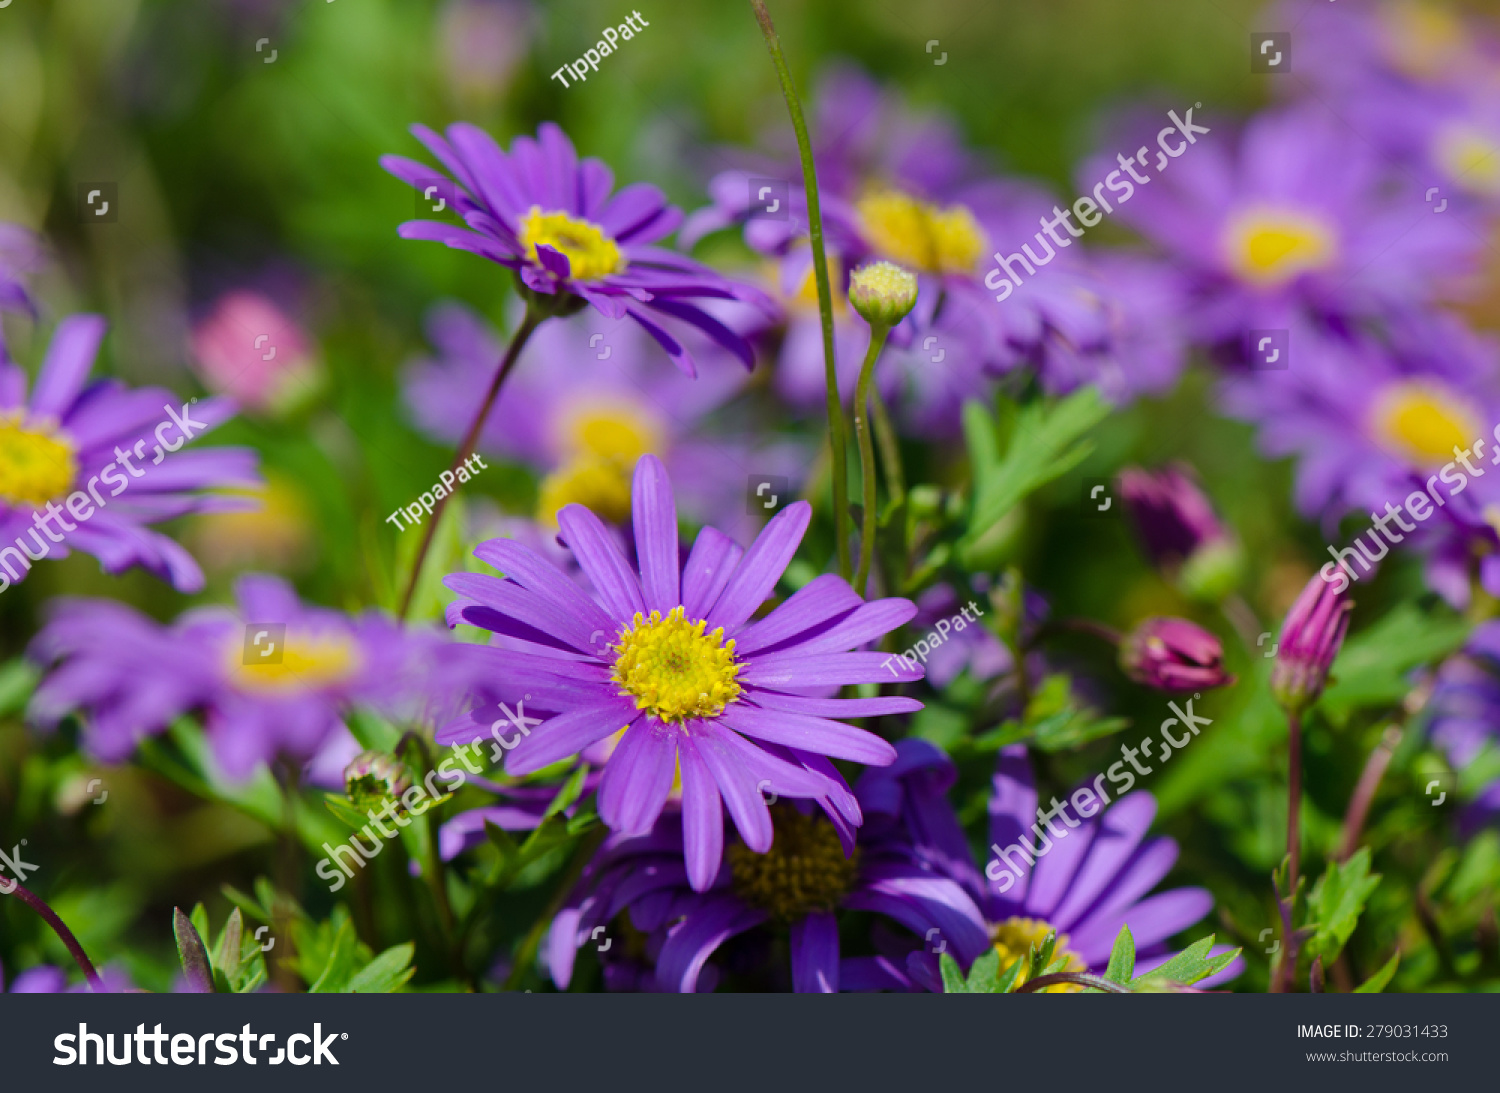 Purple daisy flowers in the garden ez canvas id 279031433 izmirmasajfo